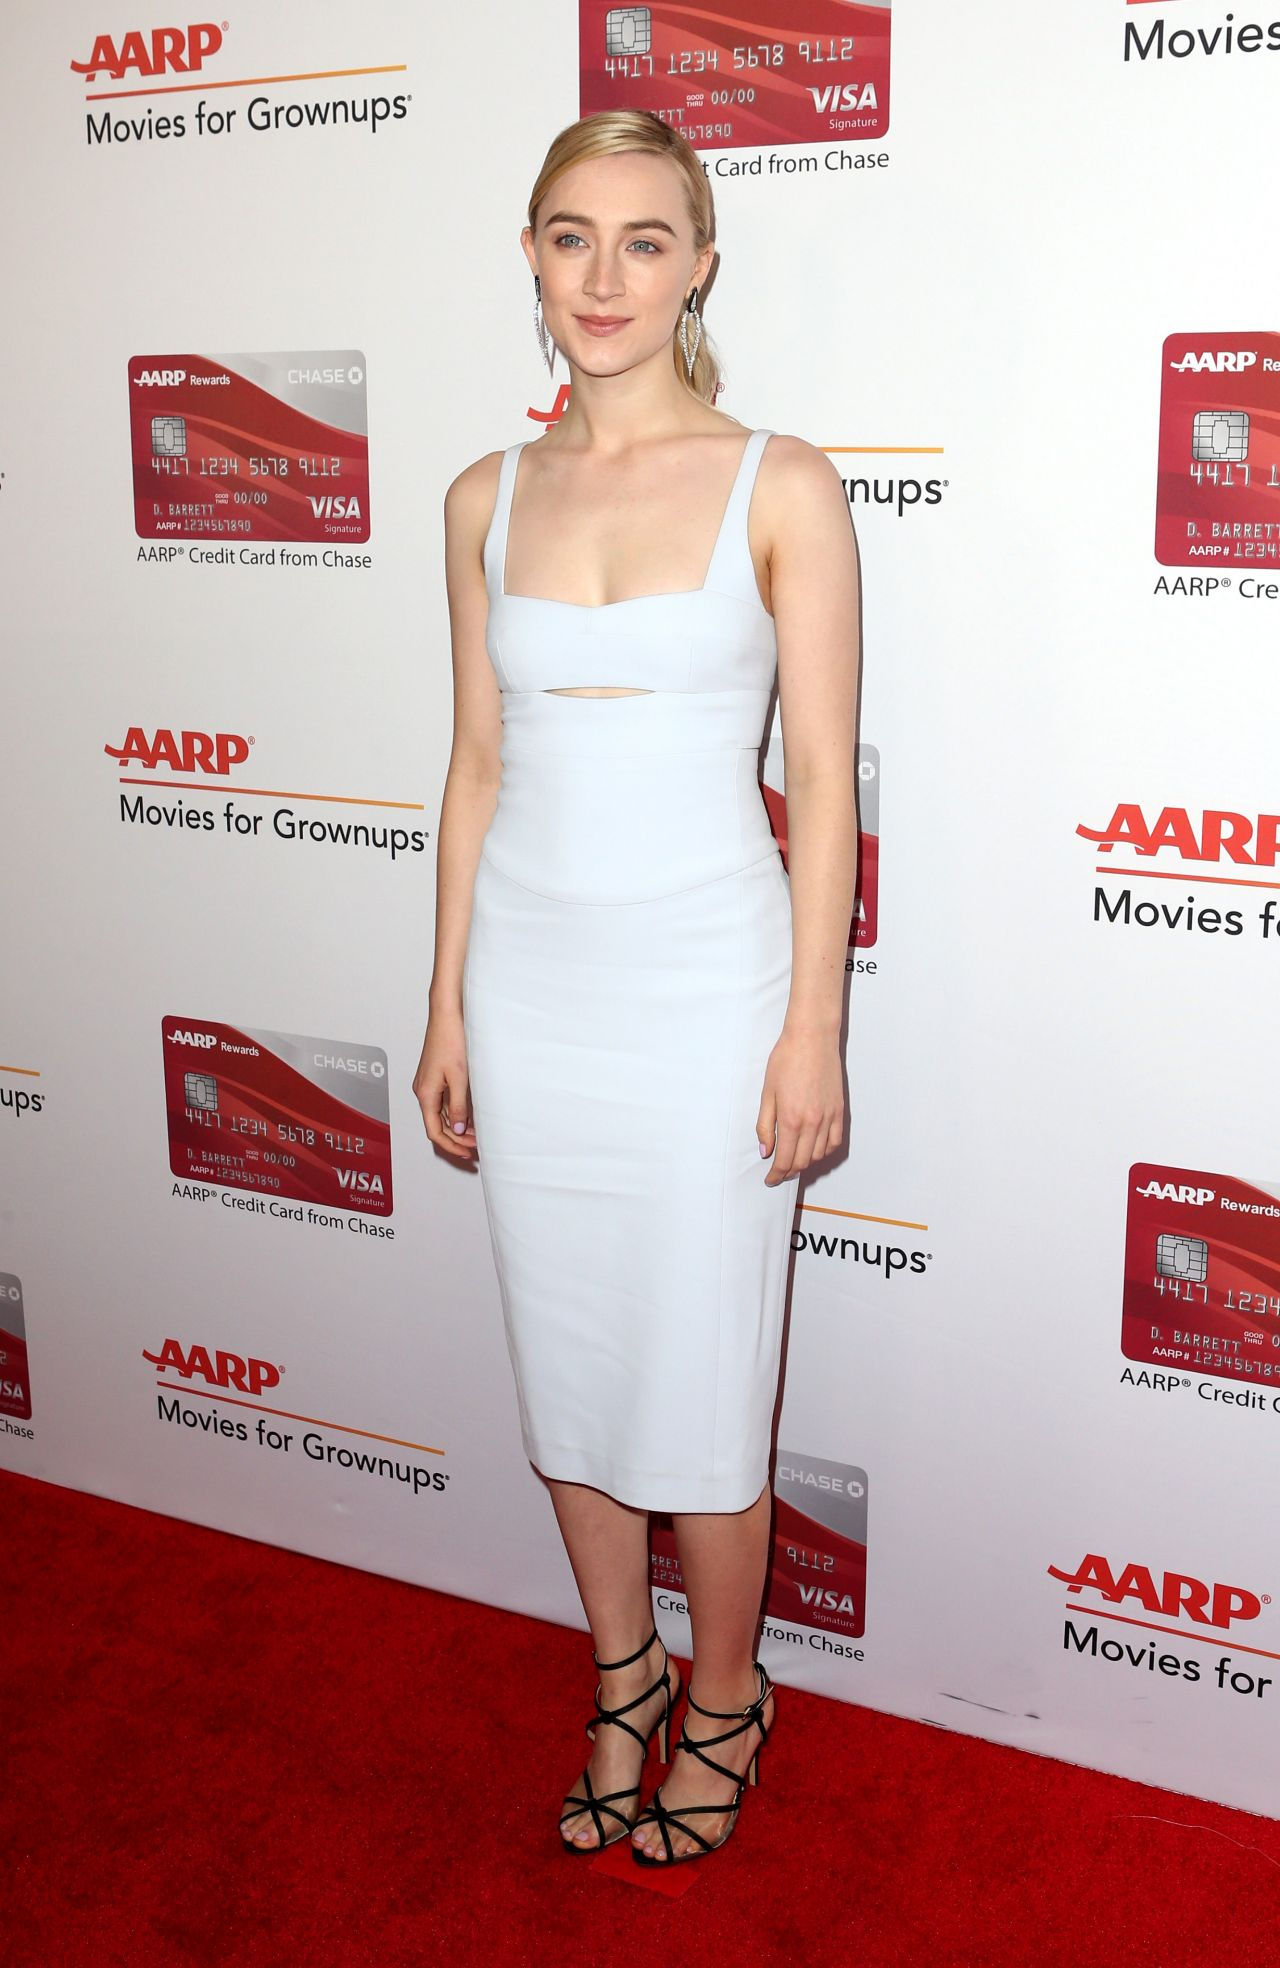 http://celebmafia.com/wp-content/uploads/2018/02/saoirse-ronan-aarp-the-magazine-s-movies-for-grownups-awards-in-los-angeles-9.jpg